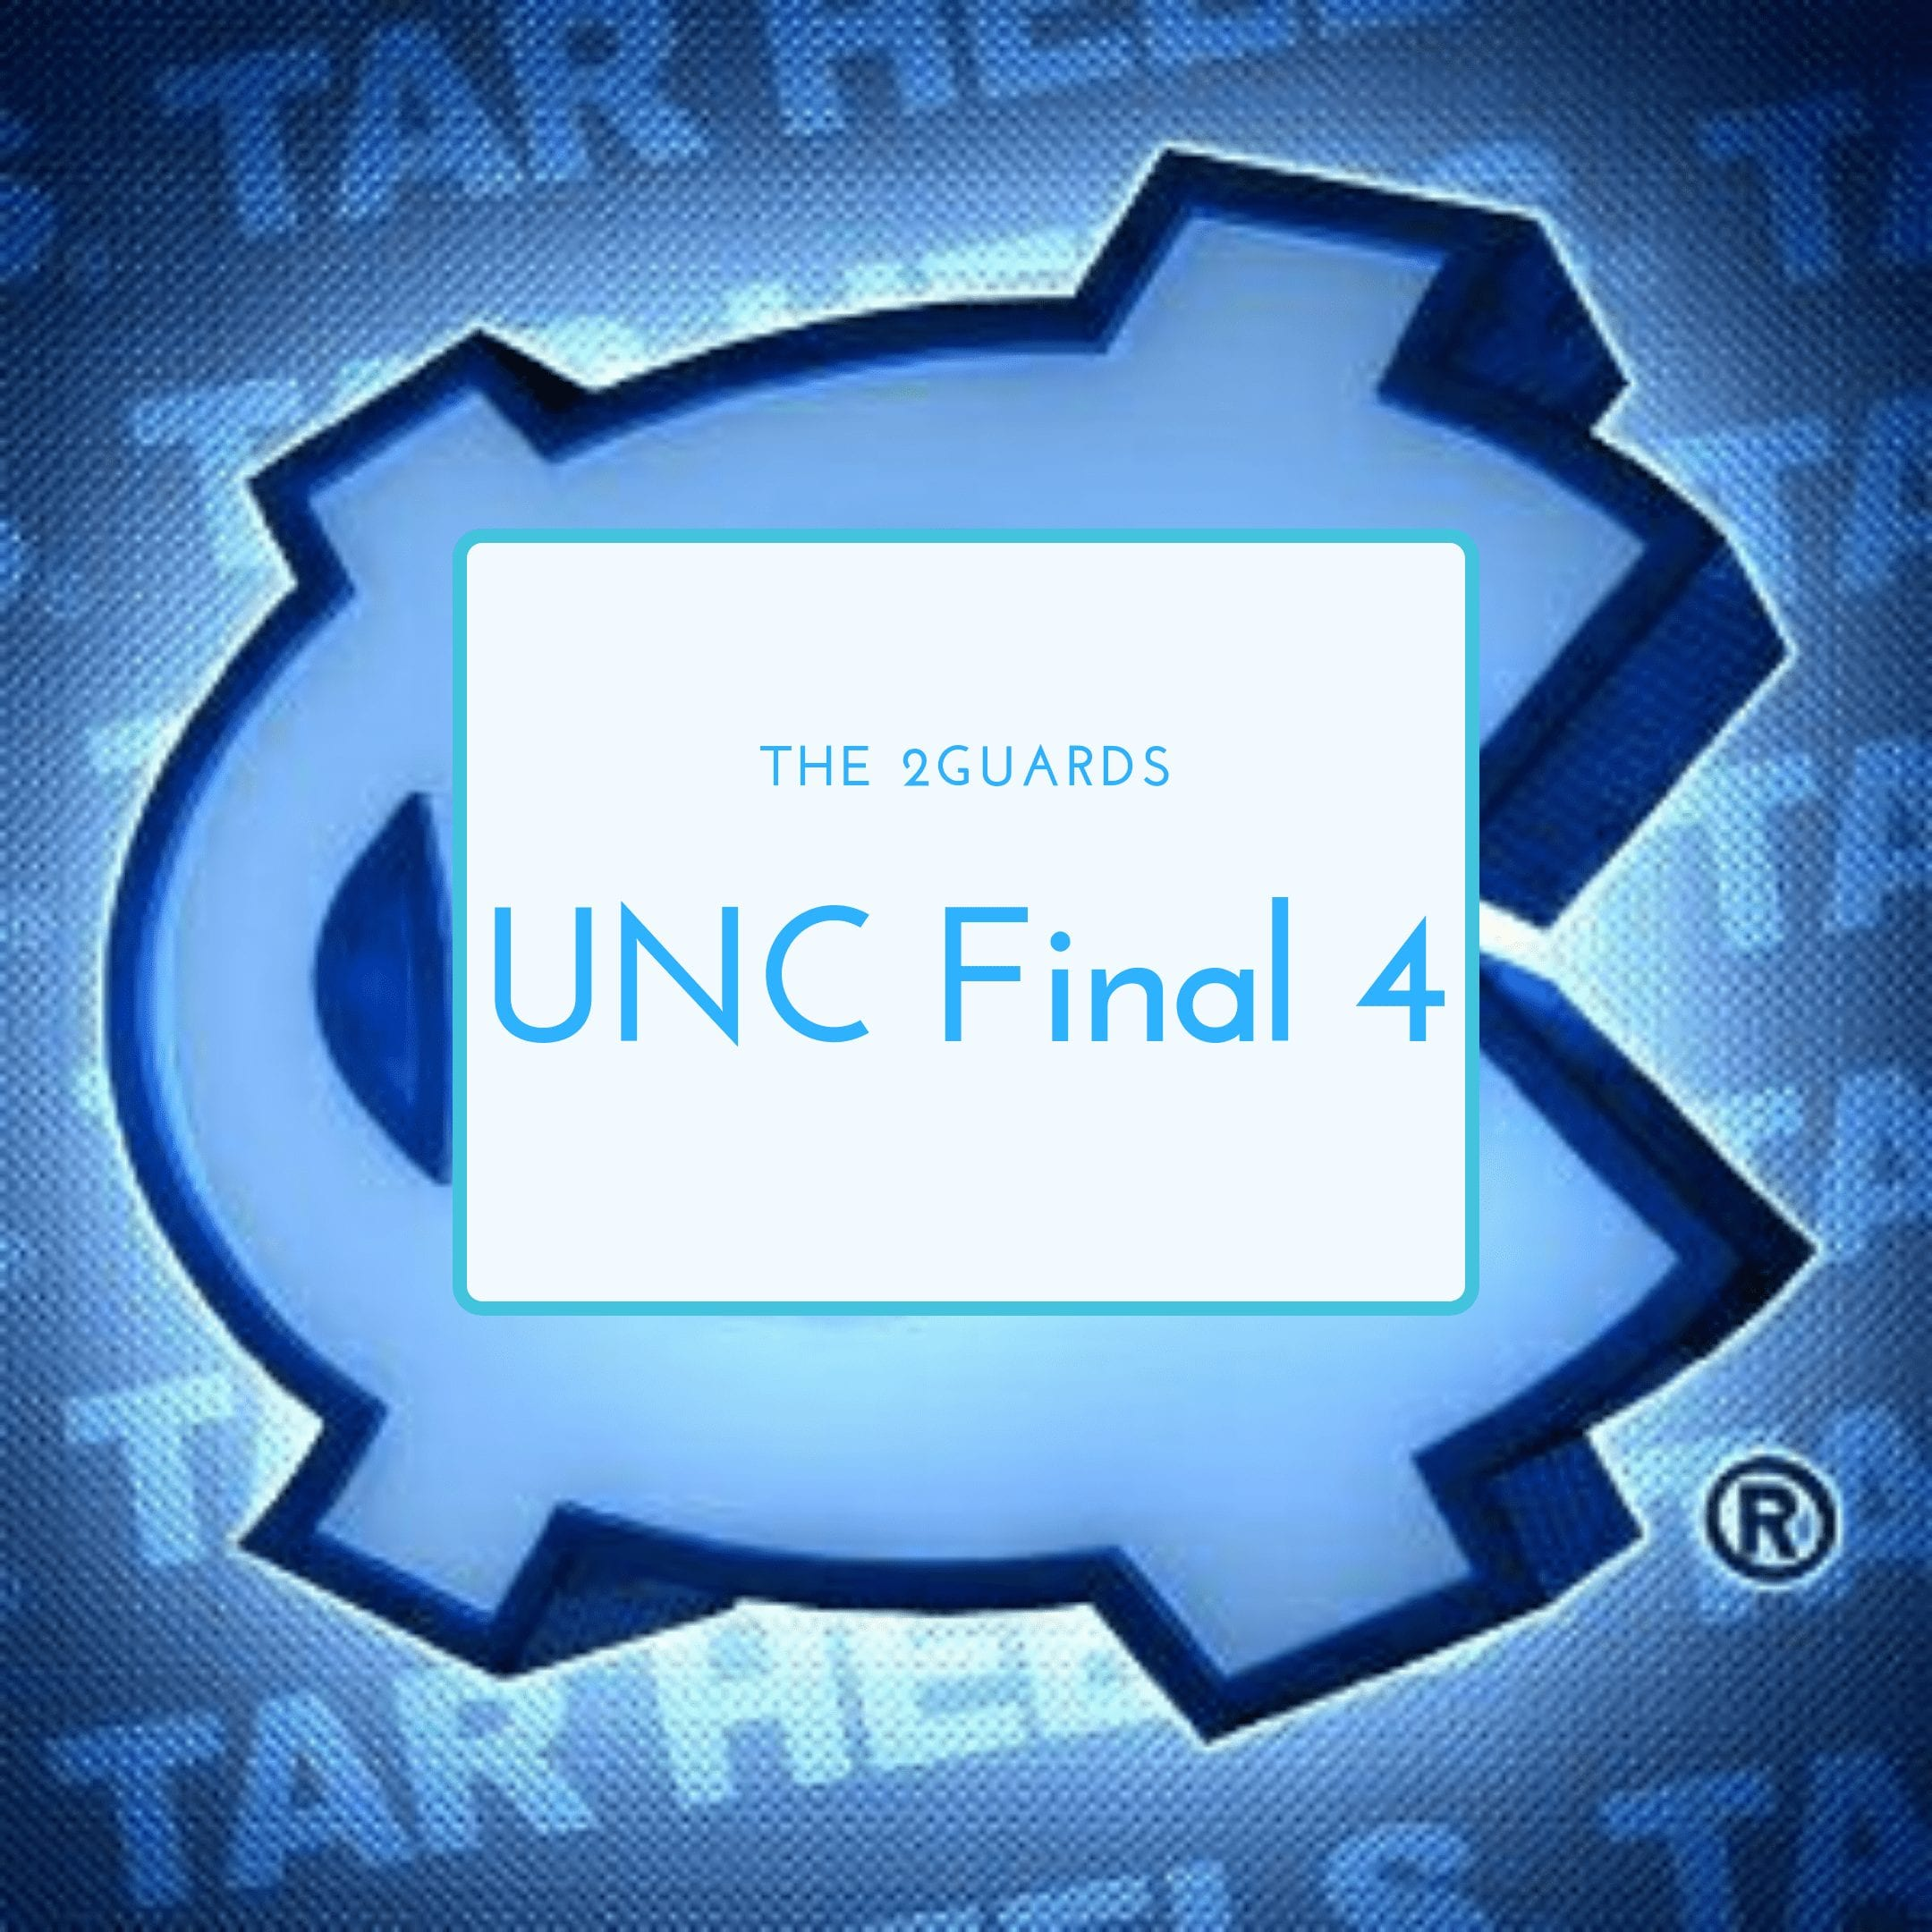 UNC Final 4:The 2Guards via @PhillyWhat